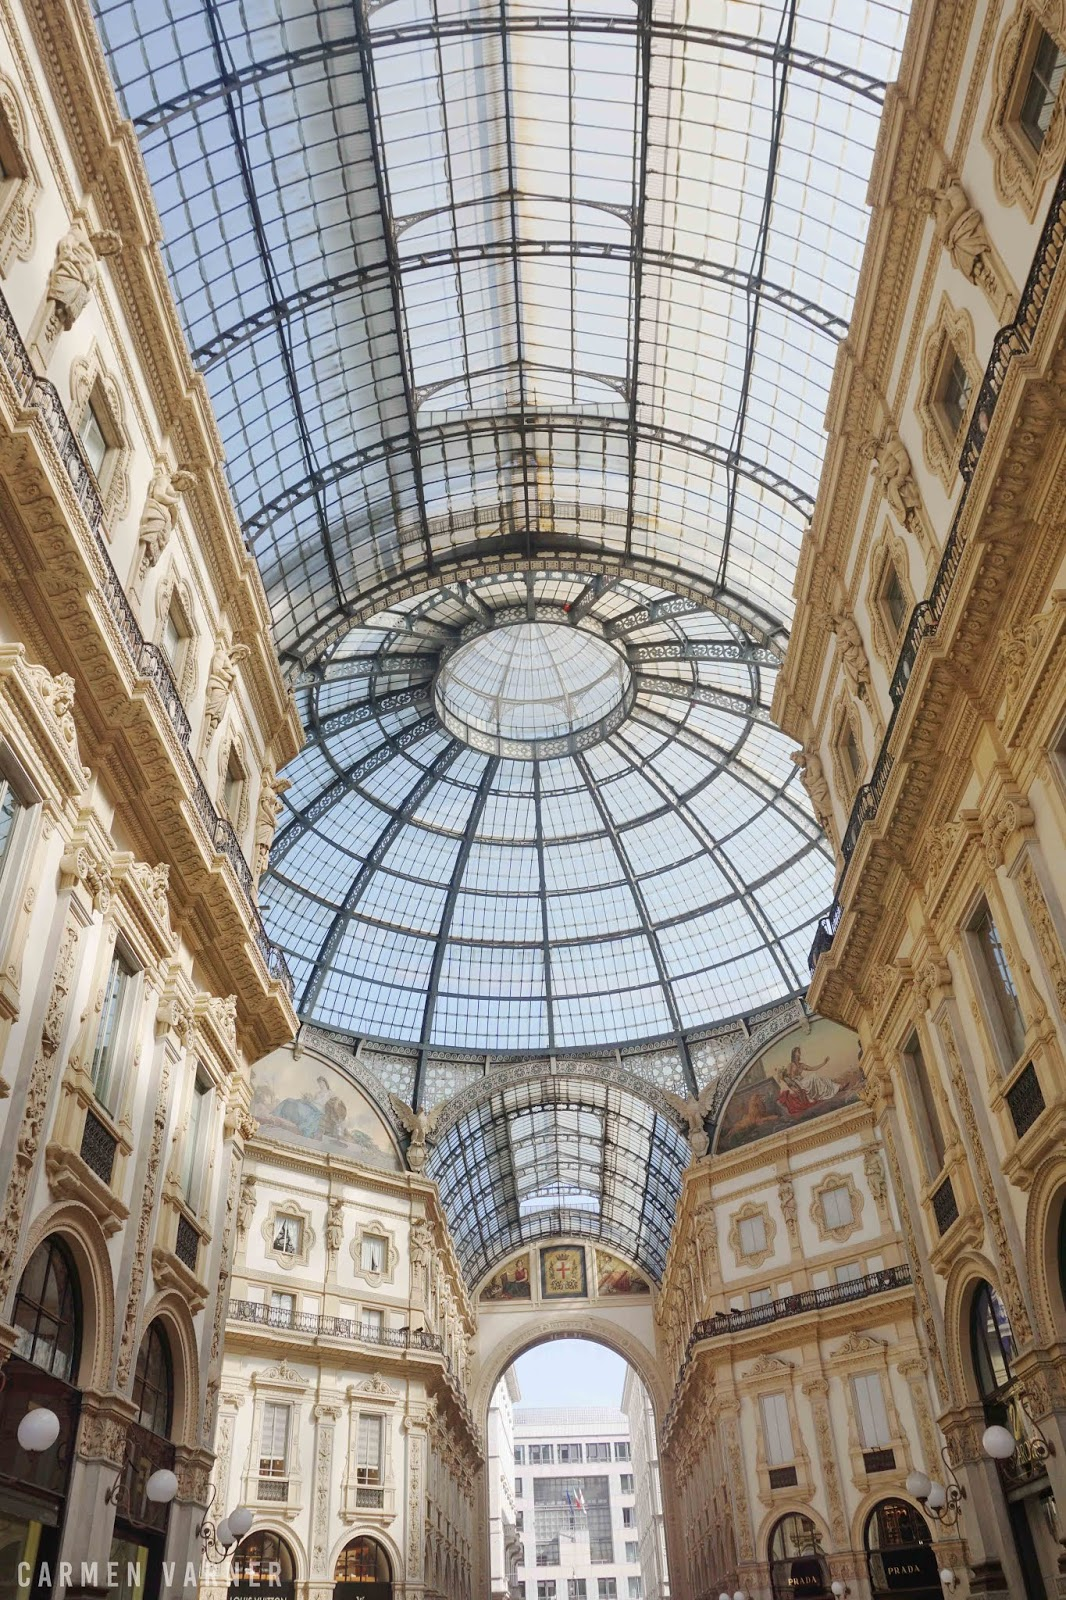 Galleria Vittorio Emanuele II shopping center mall Milan Italy travels highlights